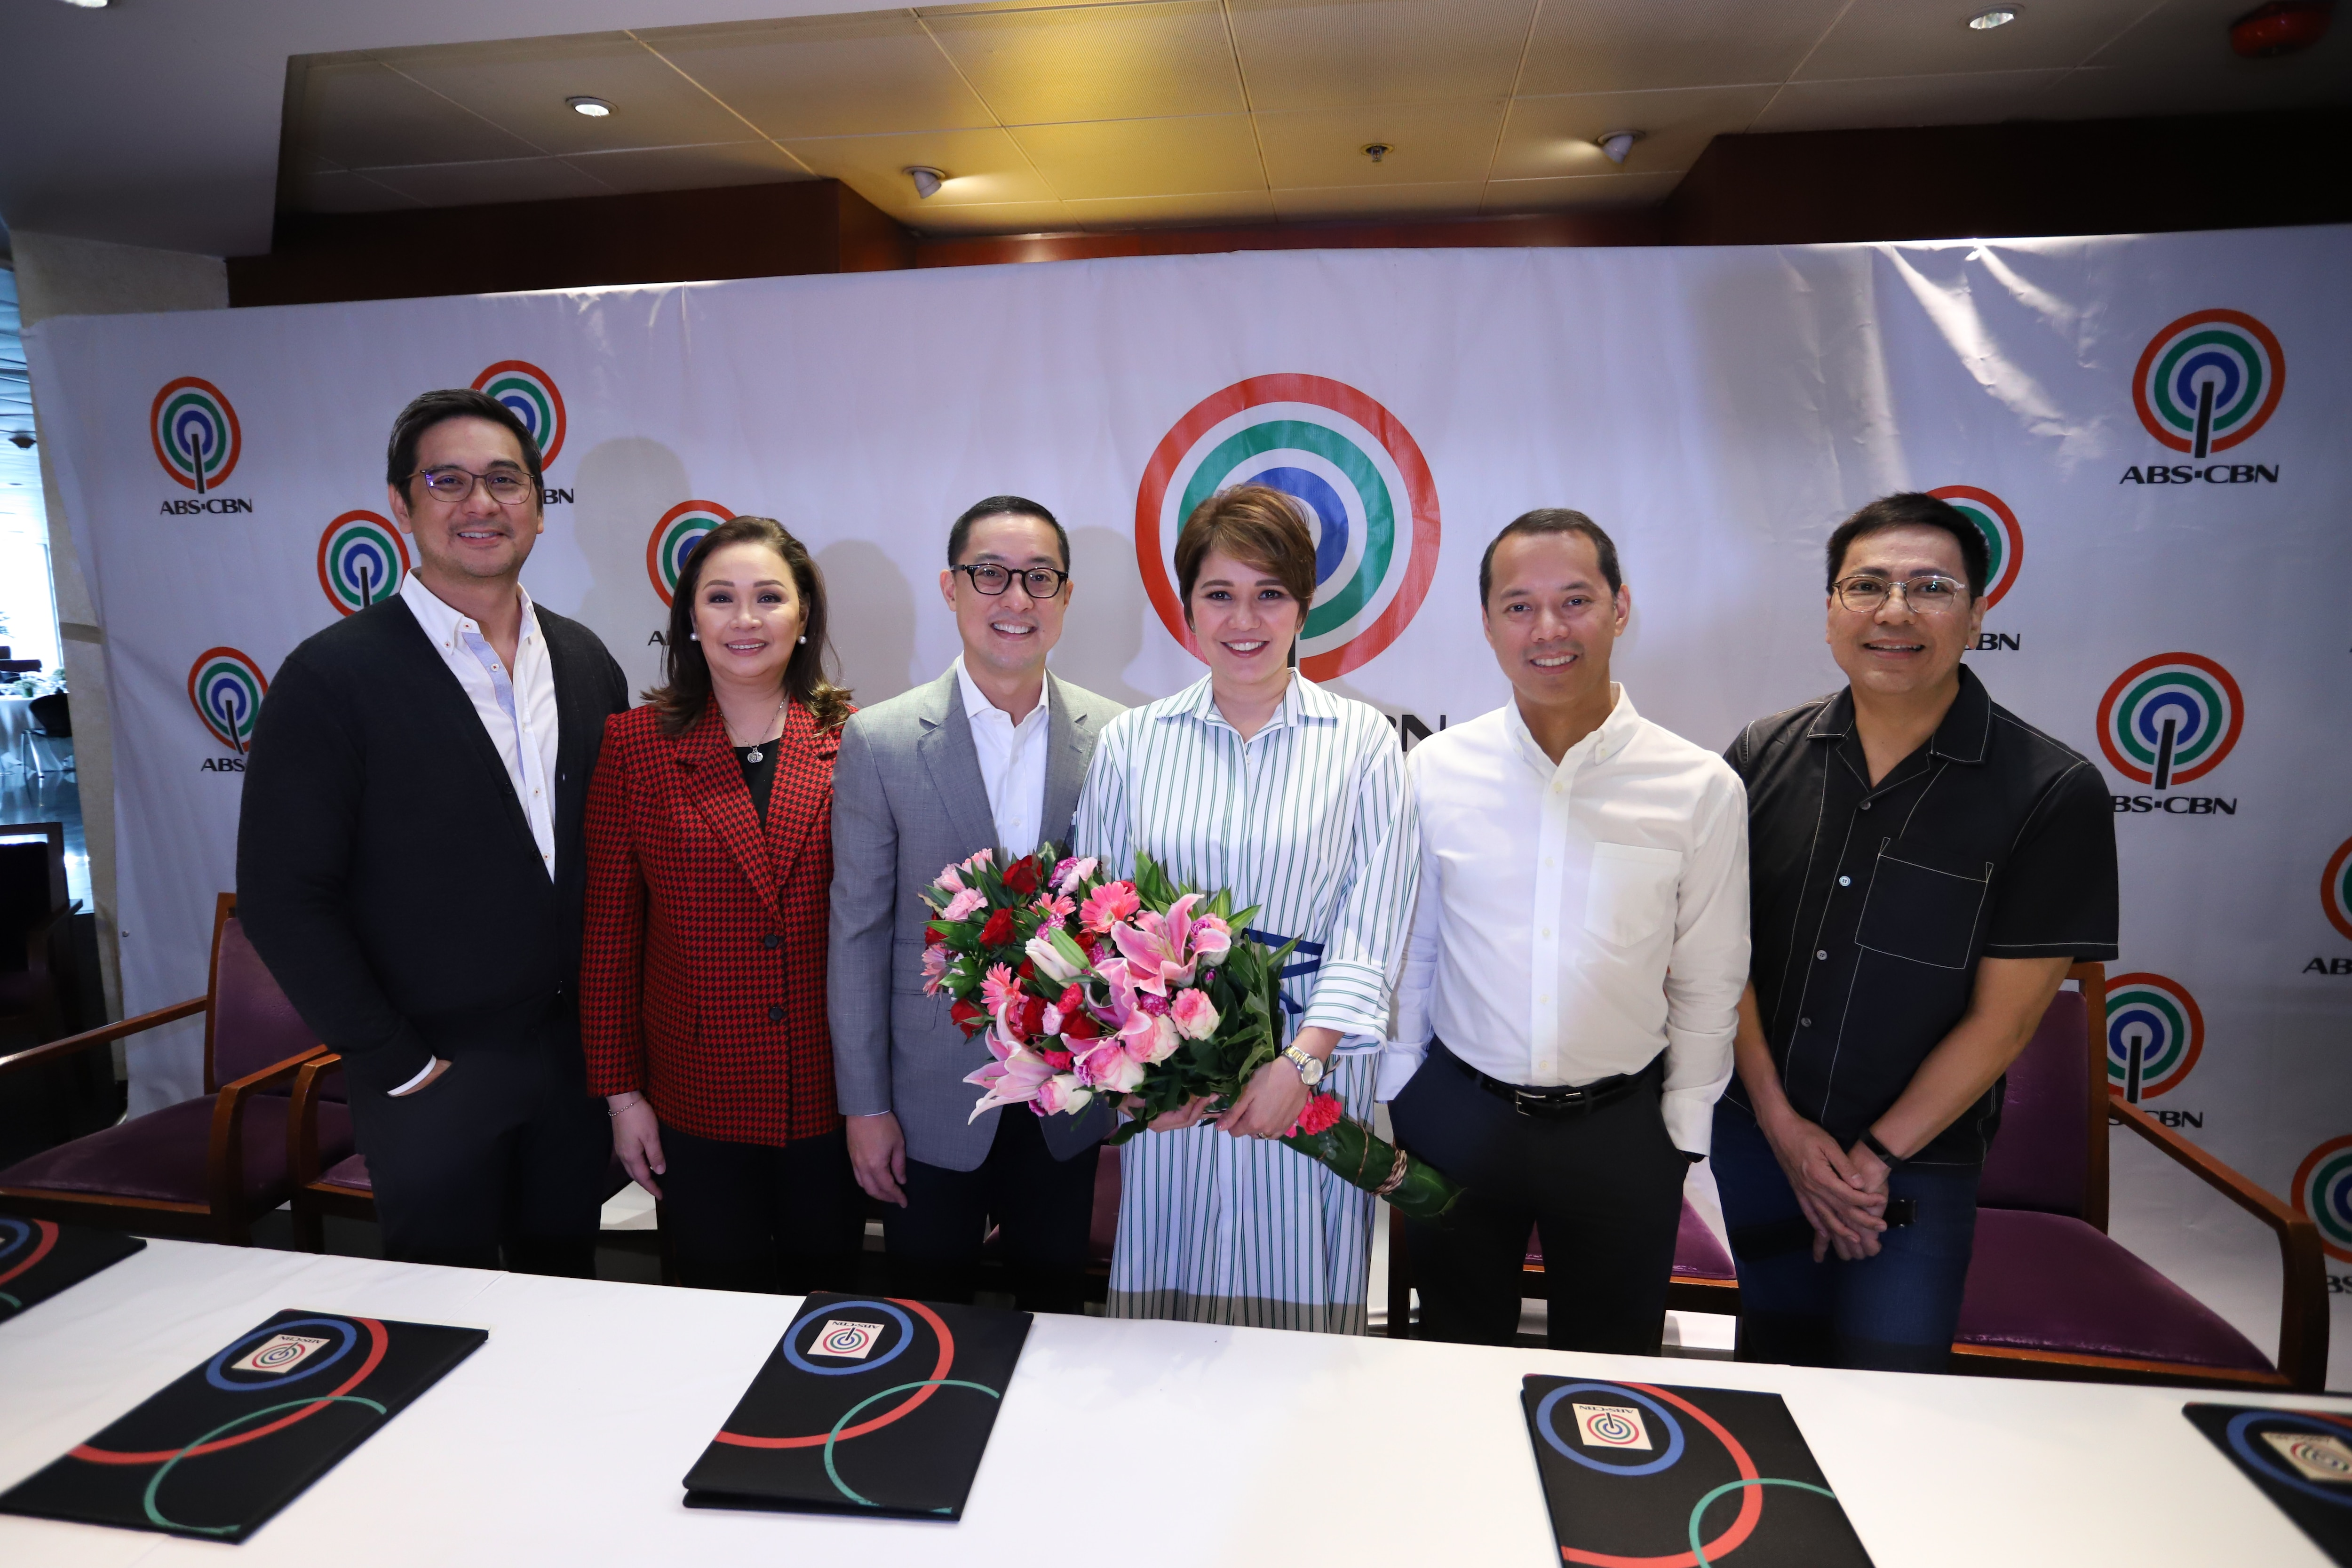 Amy Perez with ABS CBN executives